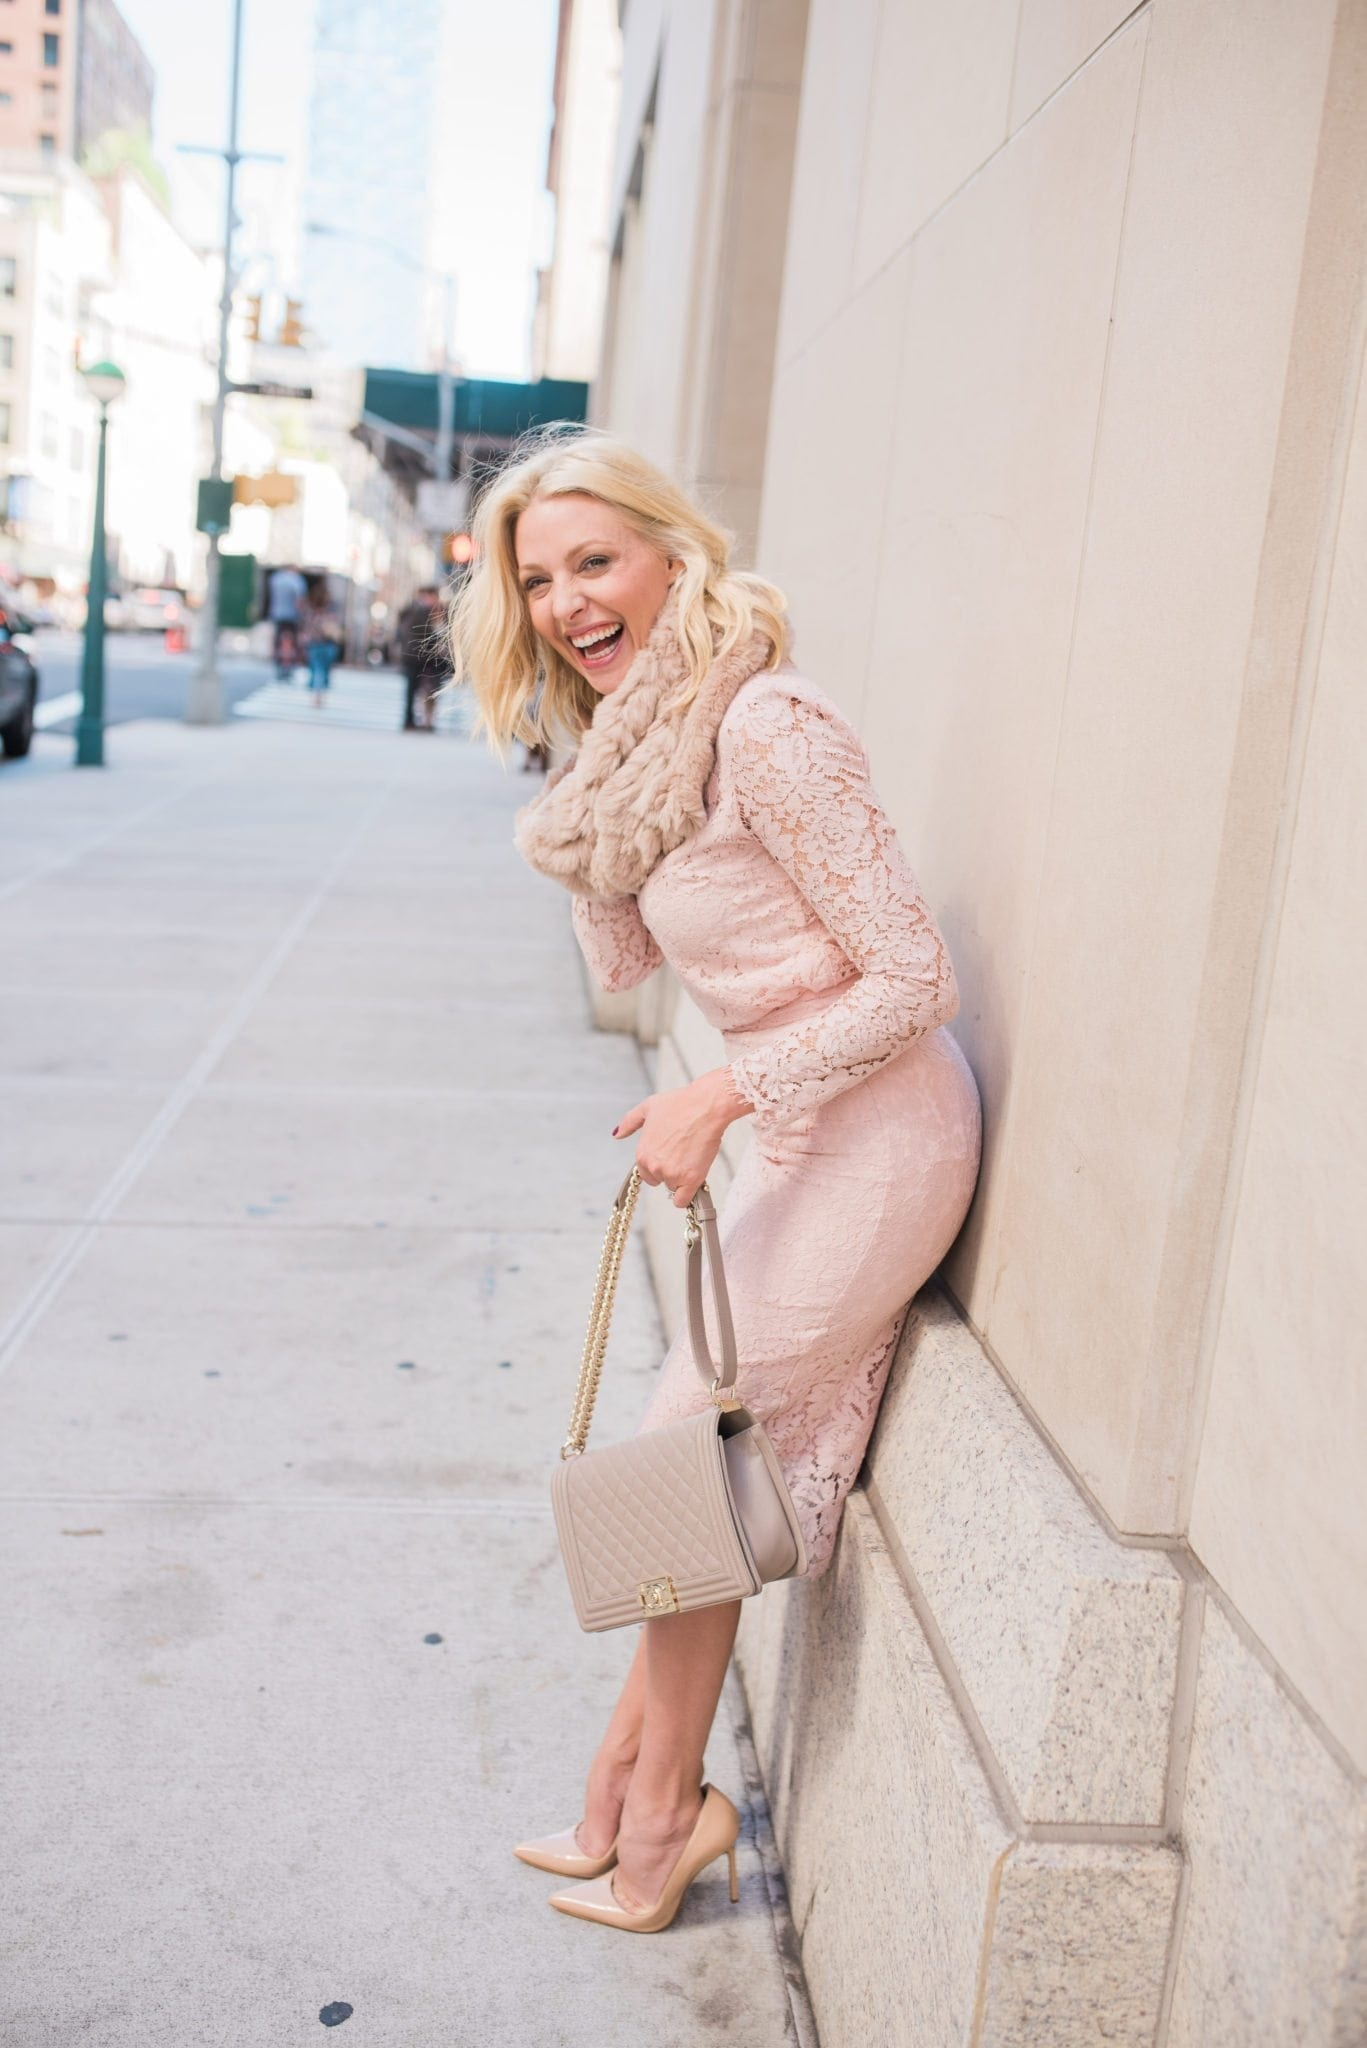 Short blonde hair on woman with pink formal outfit. Rachel Parcell clothing line review.